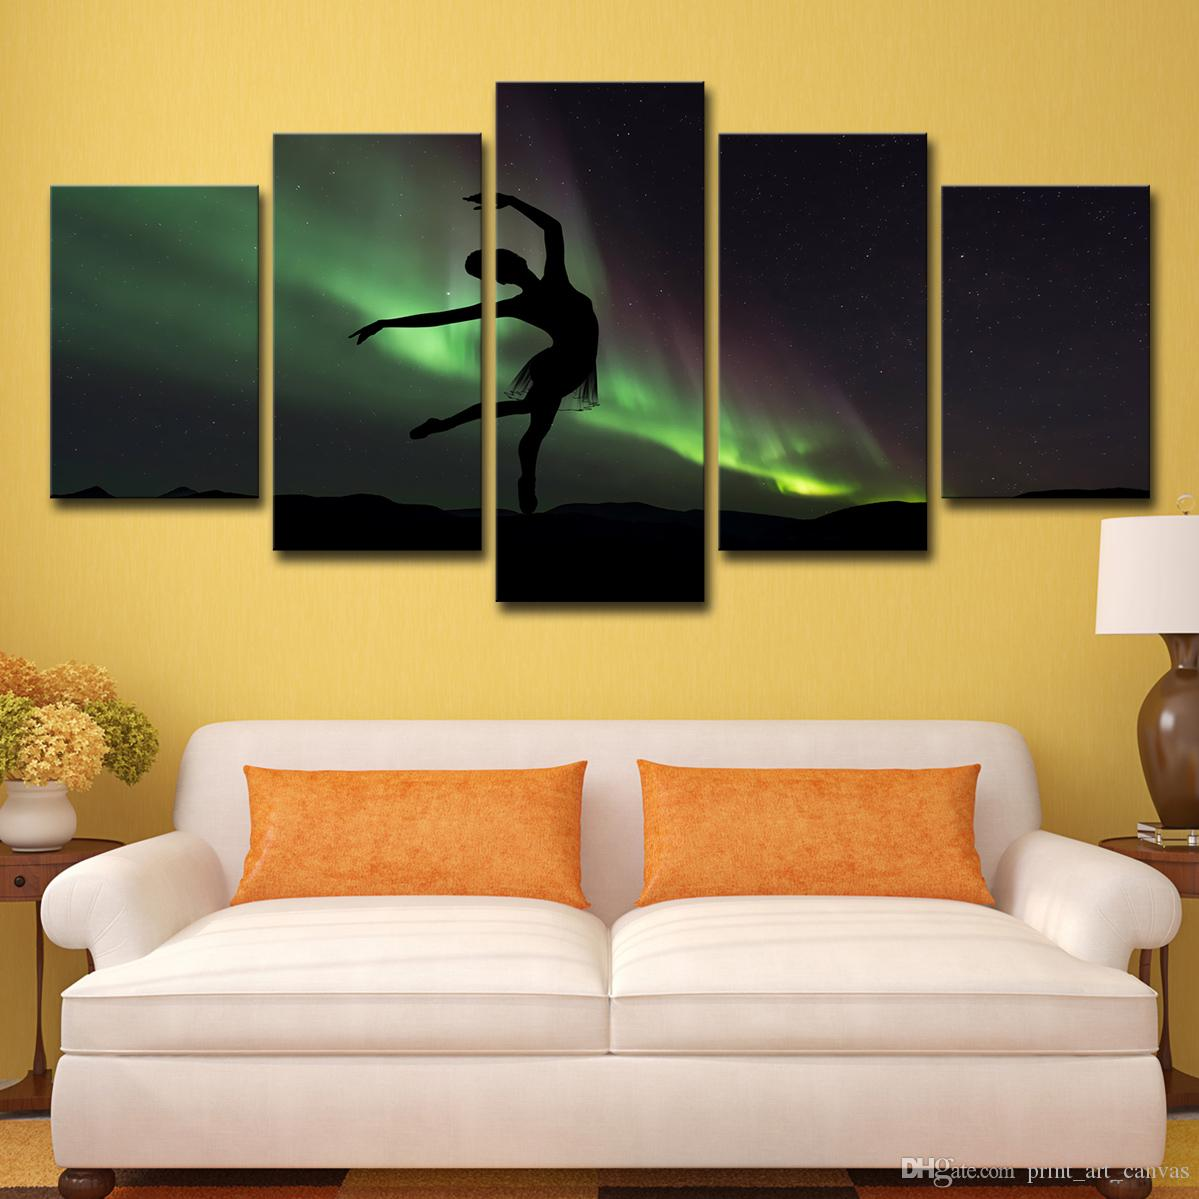 HD Printed 5 Piece Canvas Art Ferocious Beautiful Dancer Dancing In Aurora Wall Pictures for Living Room Free Shipping